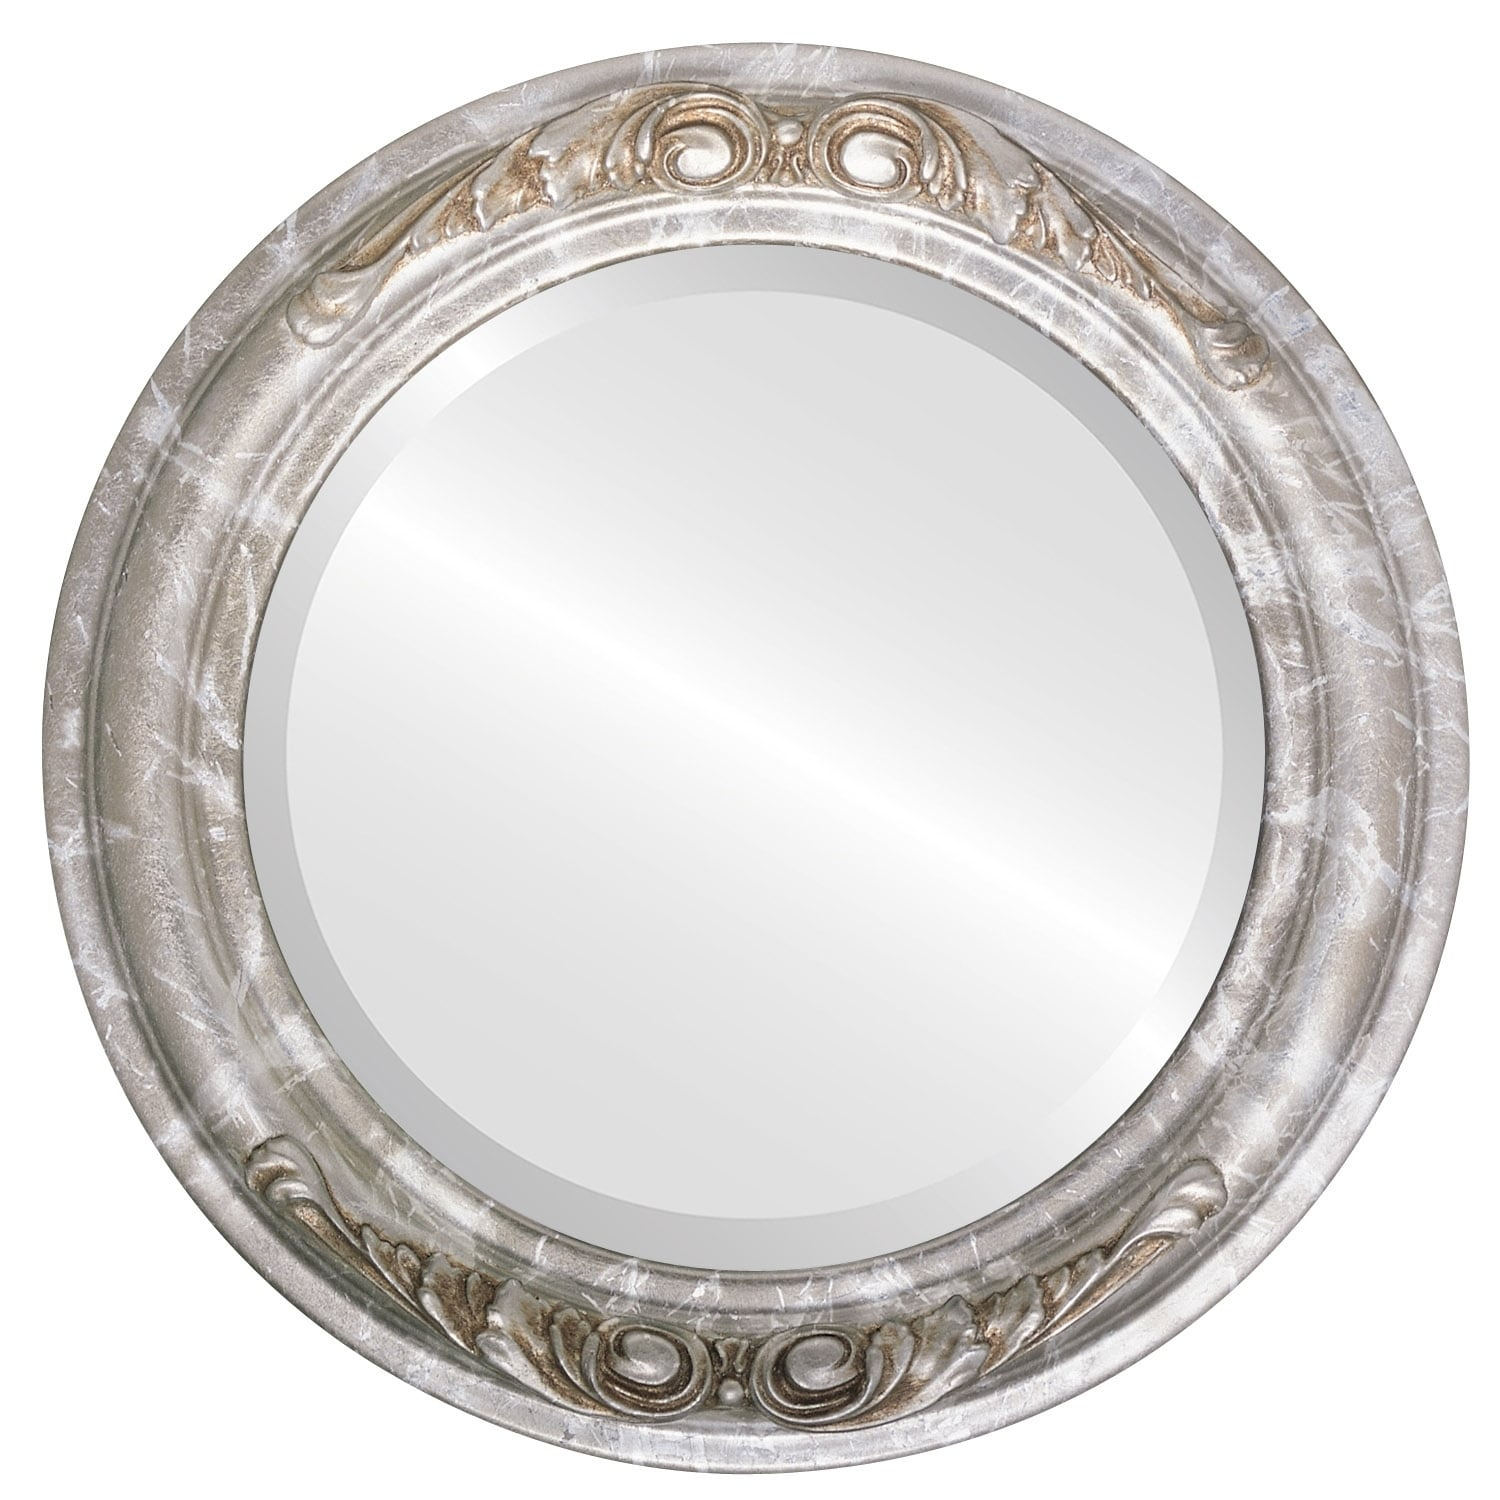 Florence Framed Round Mirror in Champagne Silver - Antique Silver (Silver - Antique - 21x21)